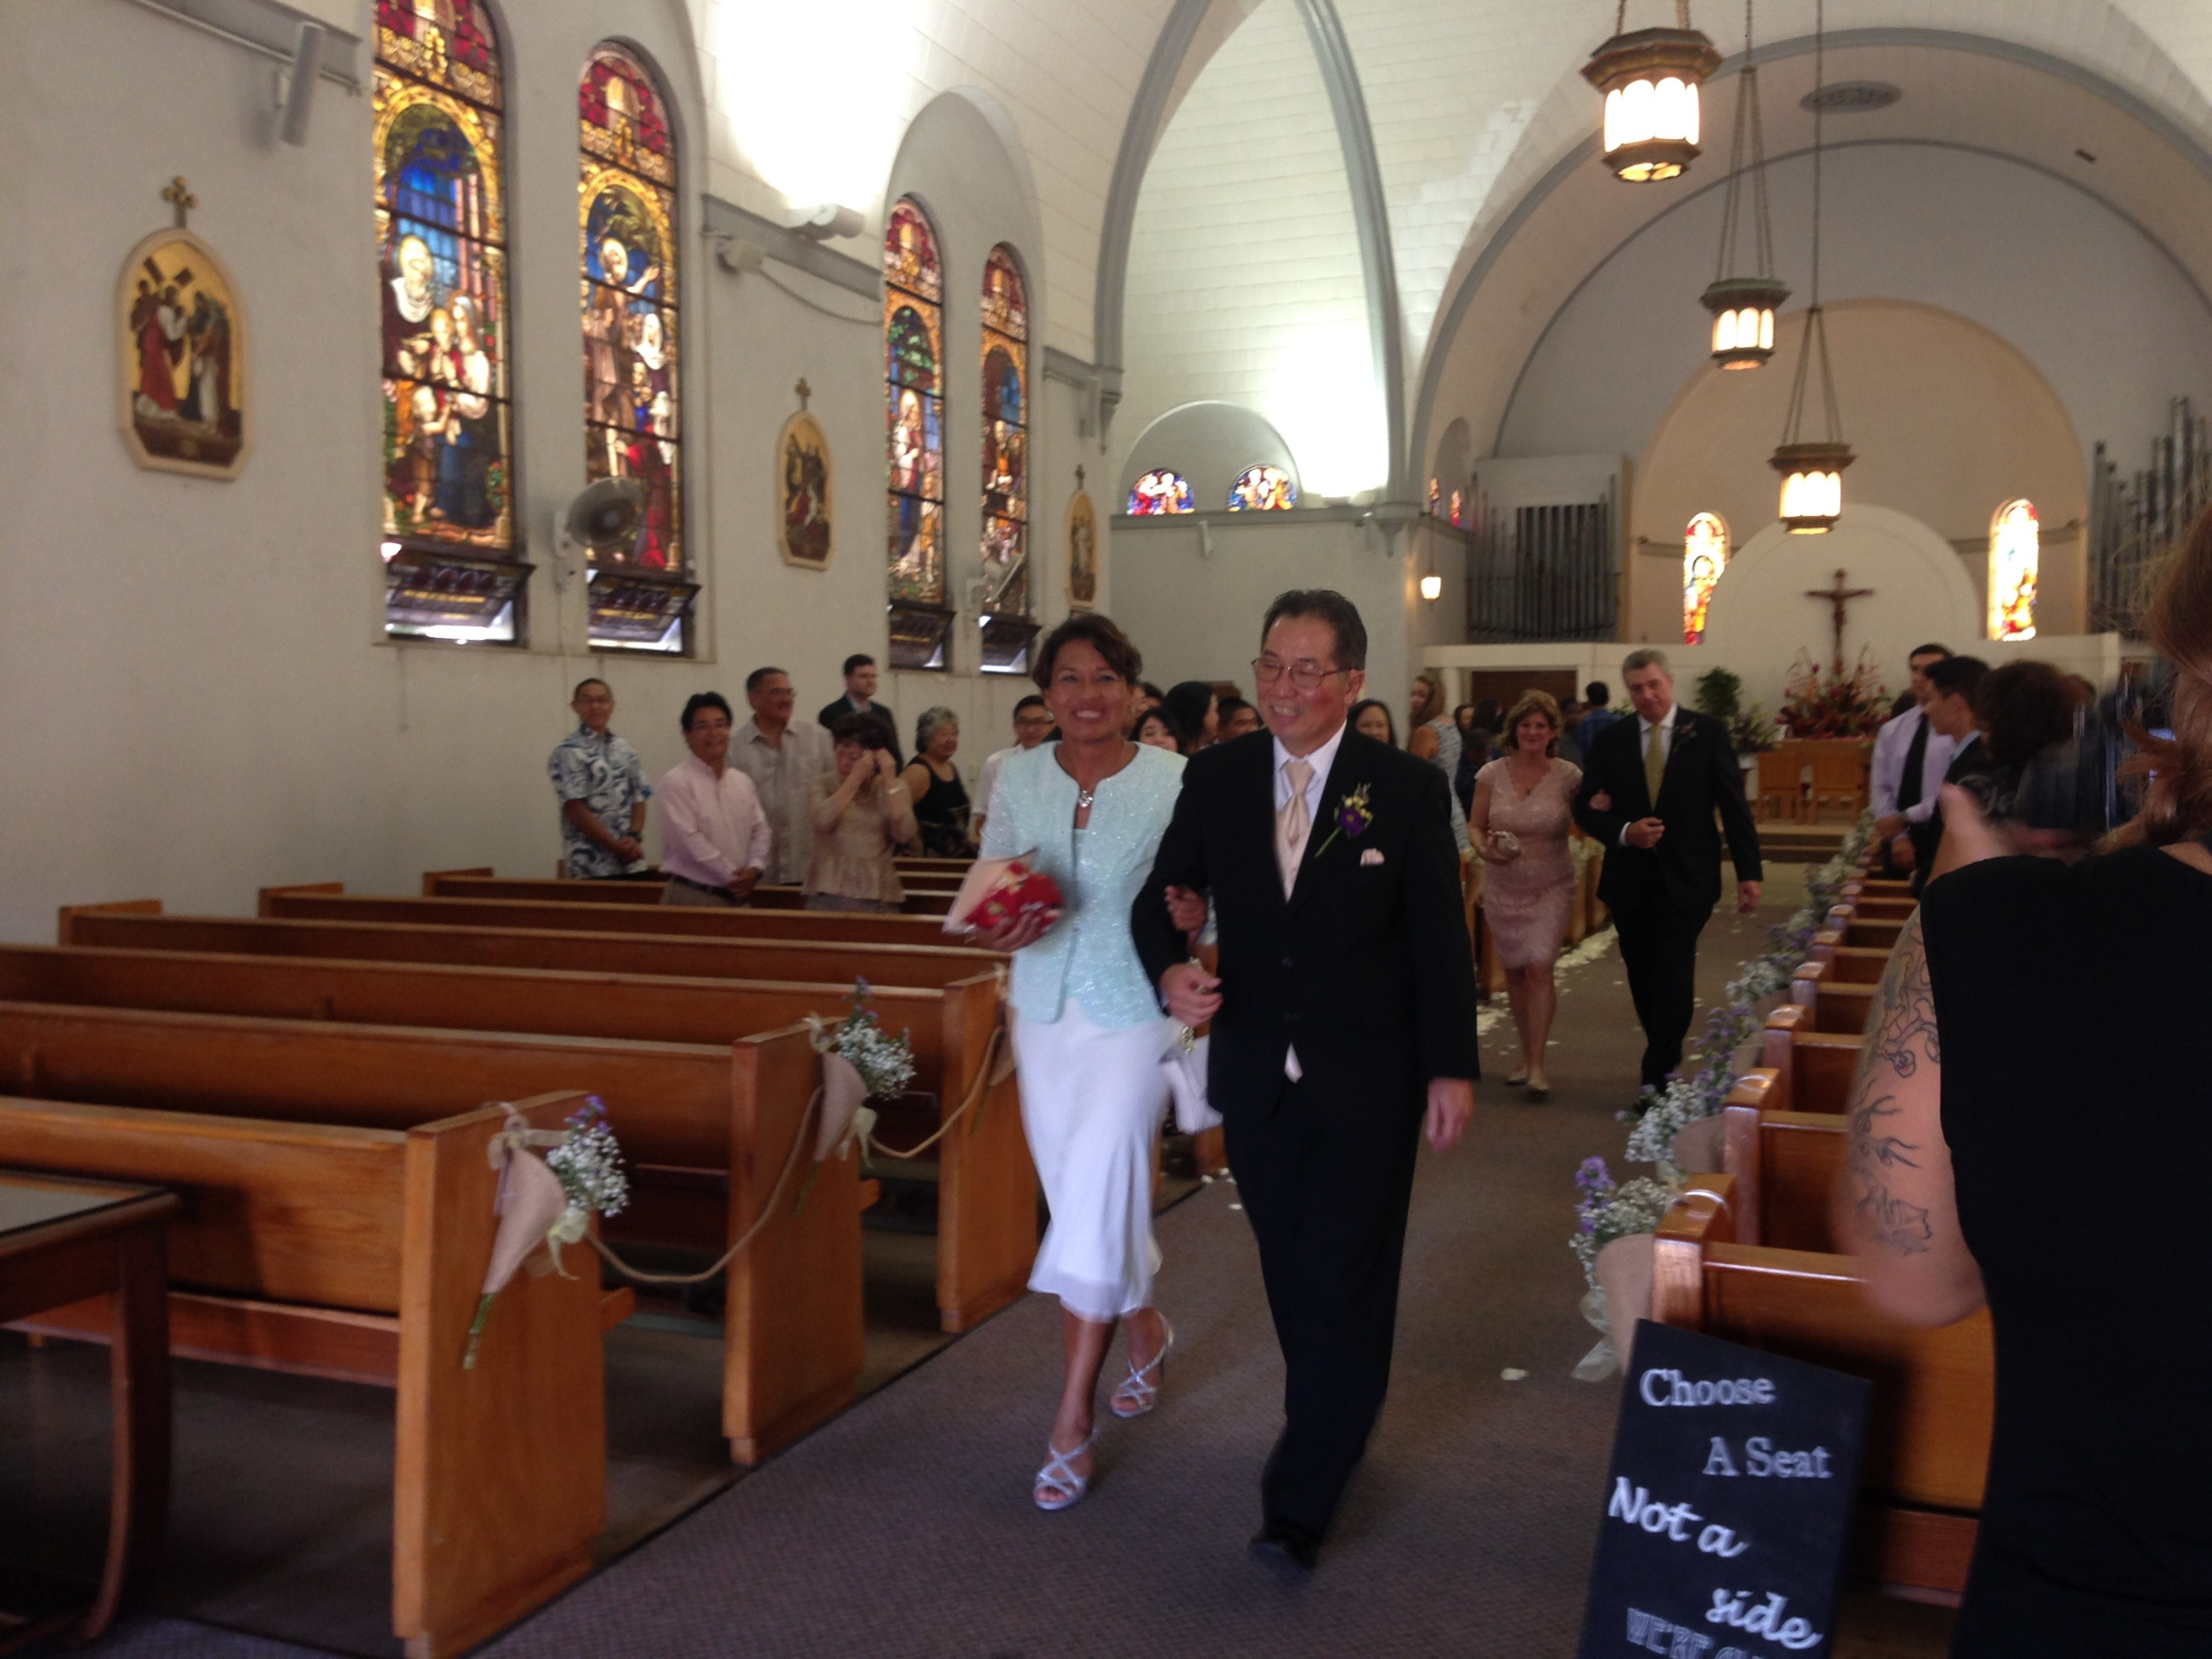 st-patrick-church-wedding-12.JPG